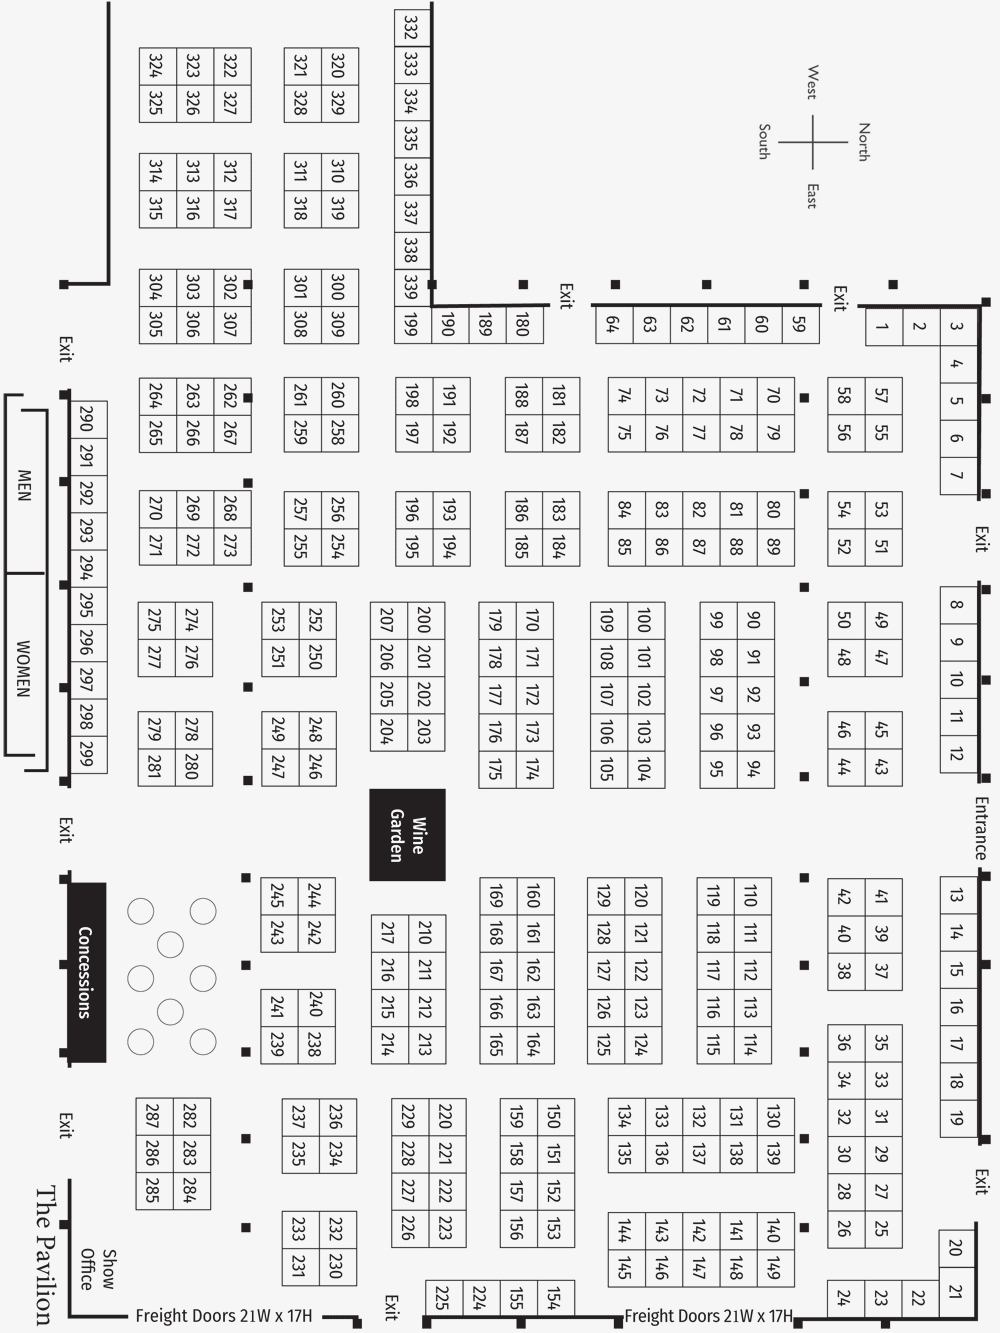 Sac Home and Garden Show Floorplan